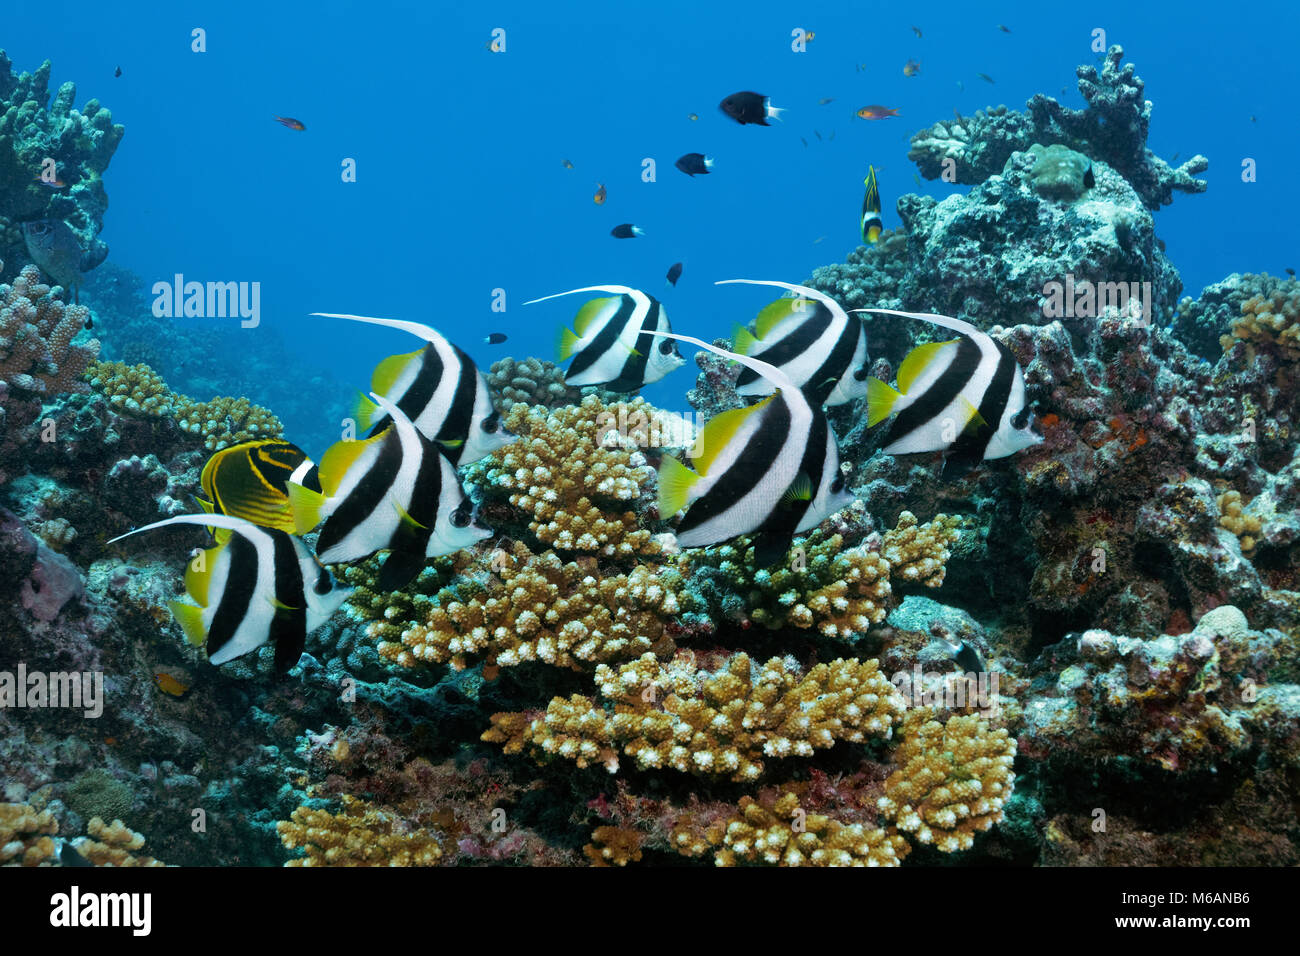 Swarm Pennant coralfishes (Heniochus acuminatus), swims over coral reef, Pacific Ocean, French Polynesia - Stock Image